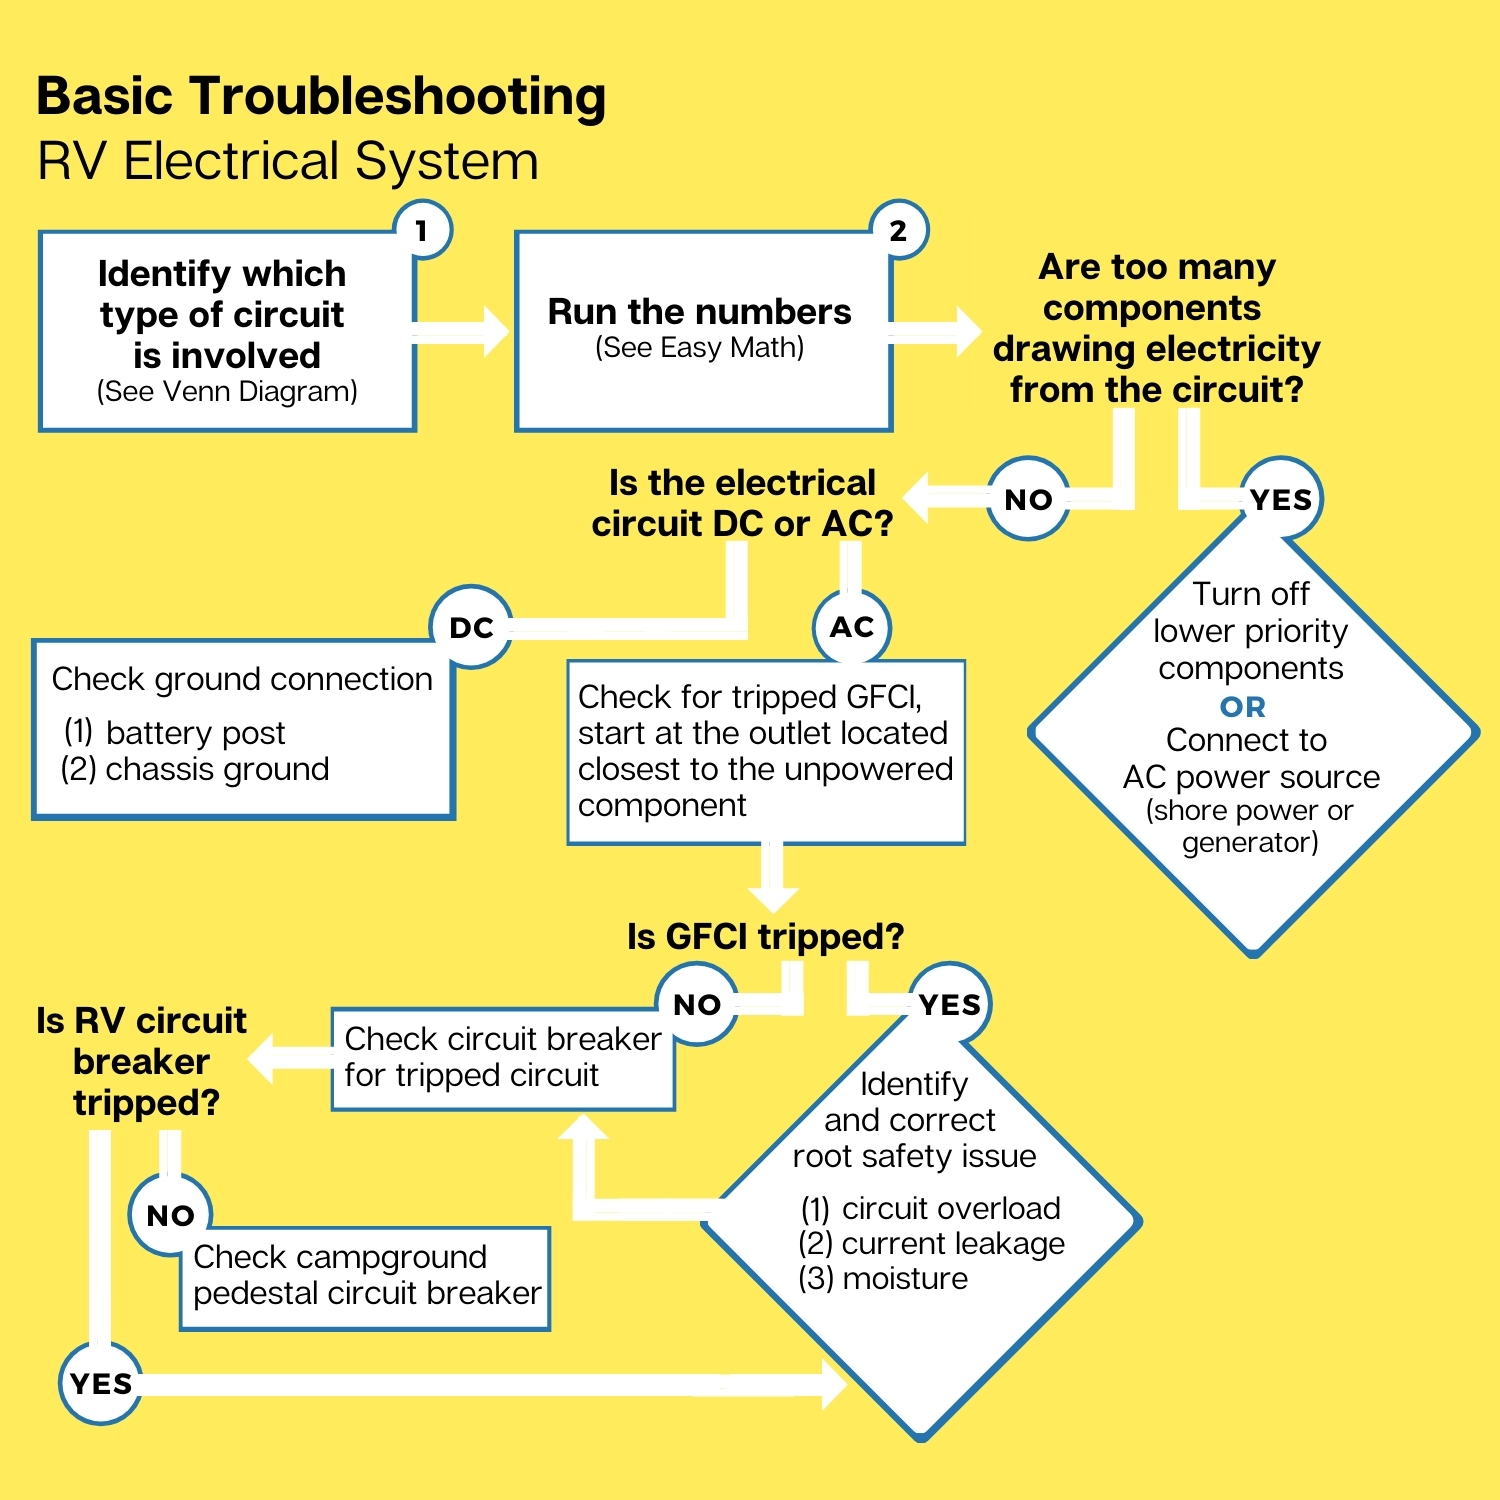 Flowchart - Basic Troubleshooting RV Electrical System